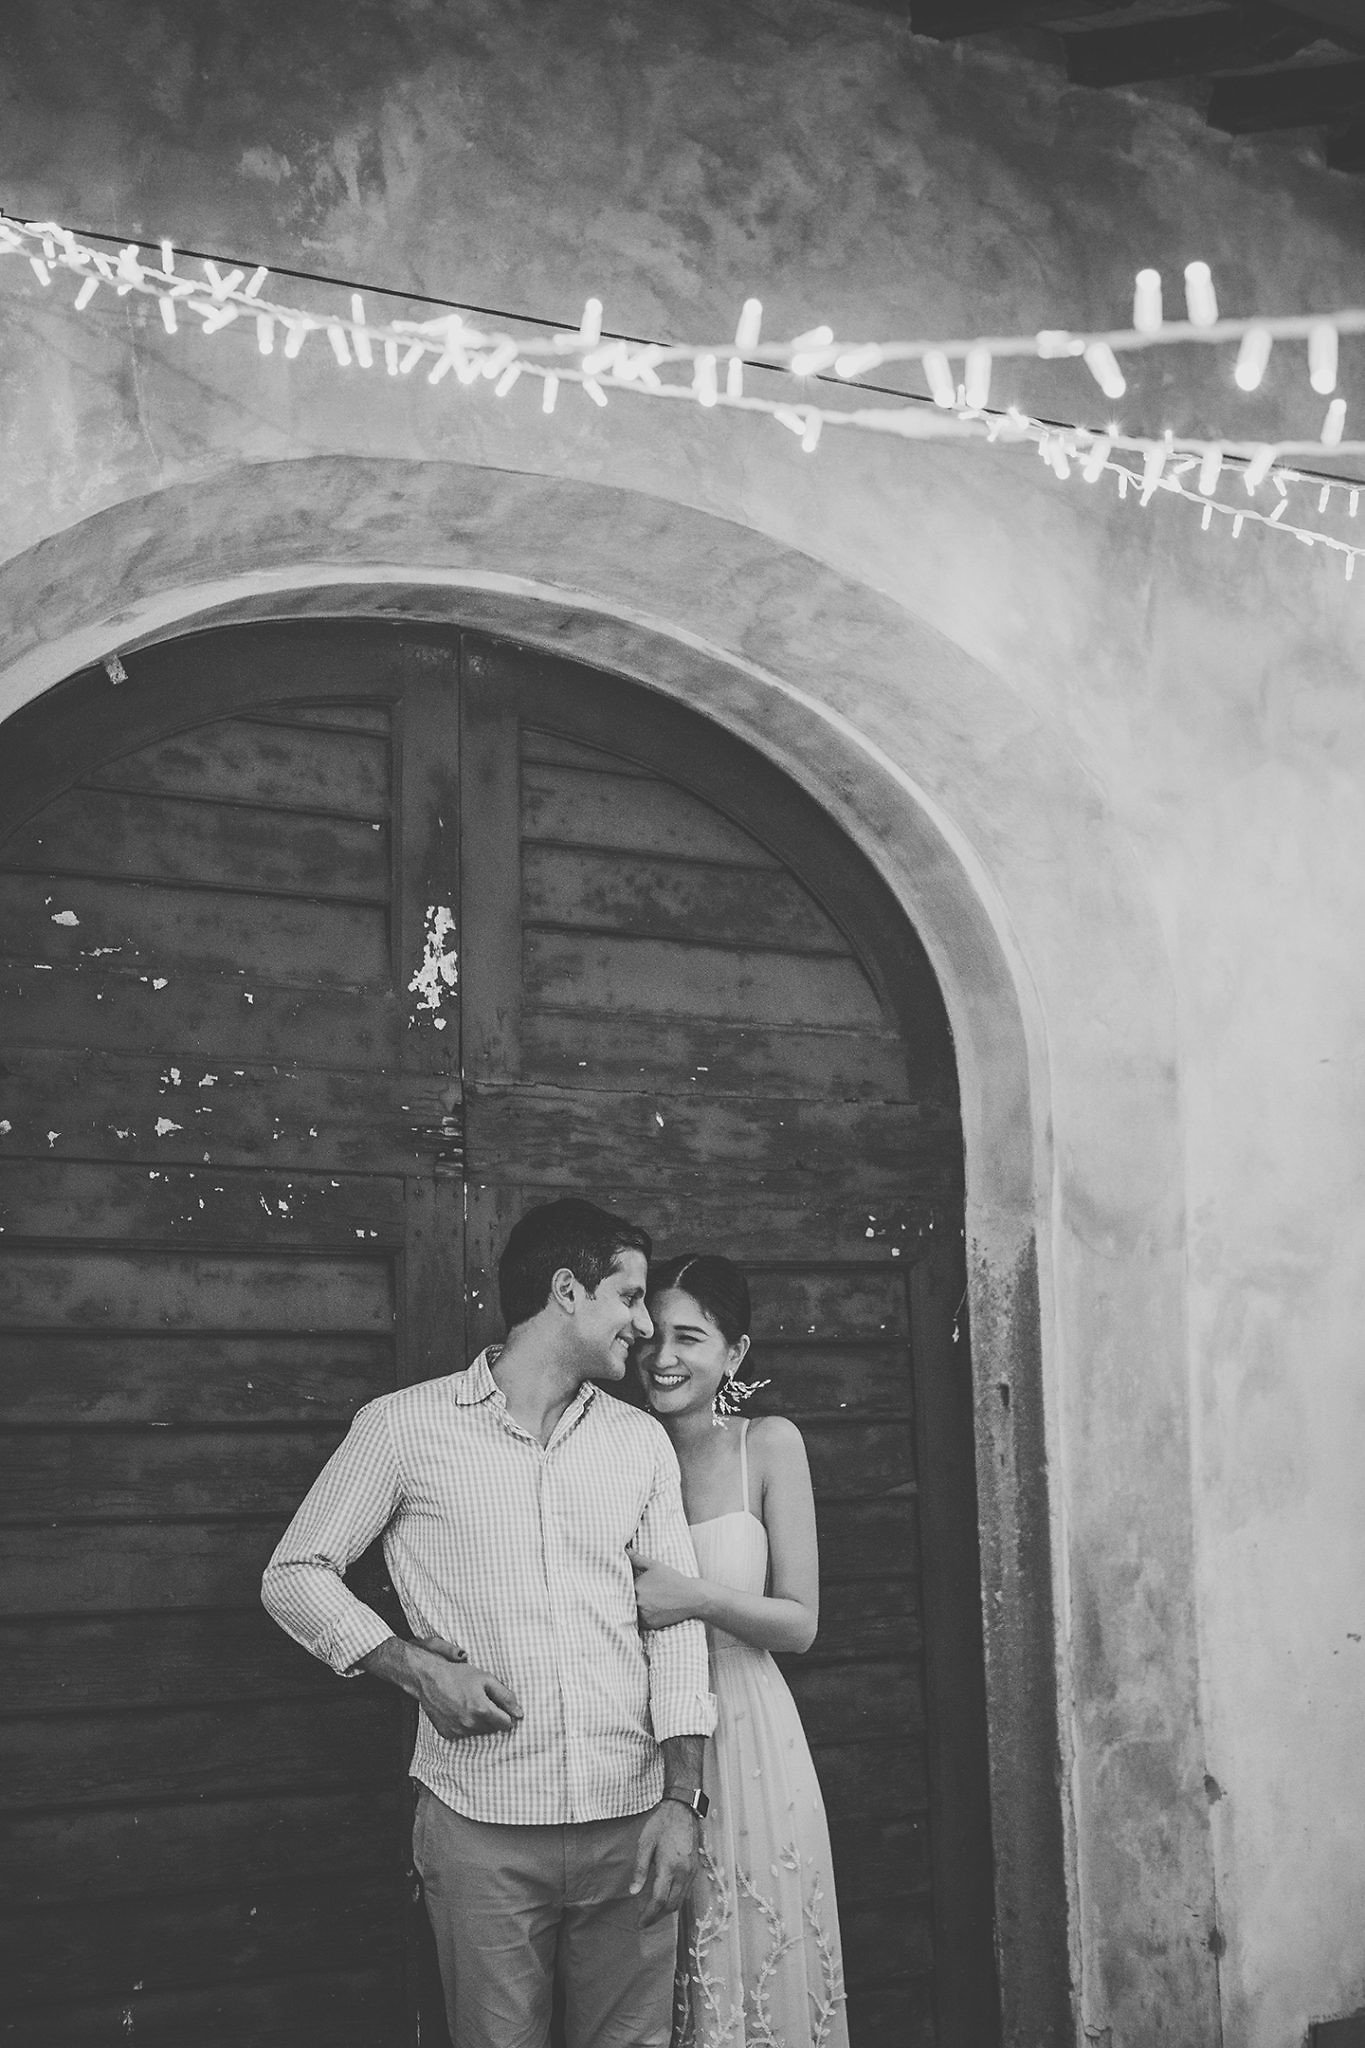 bride-groom-rehersal-wedding-portrait-vignamaggio-tuscany